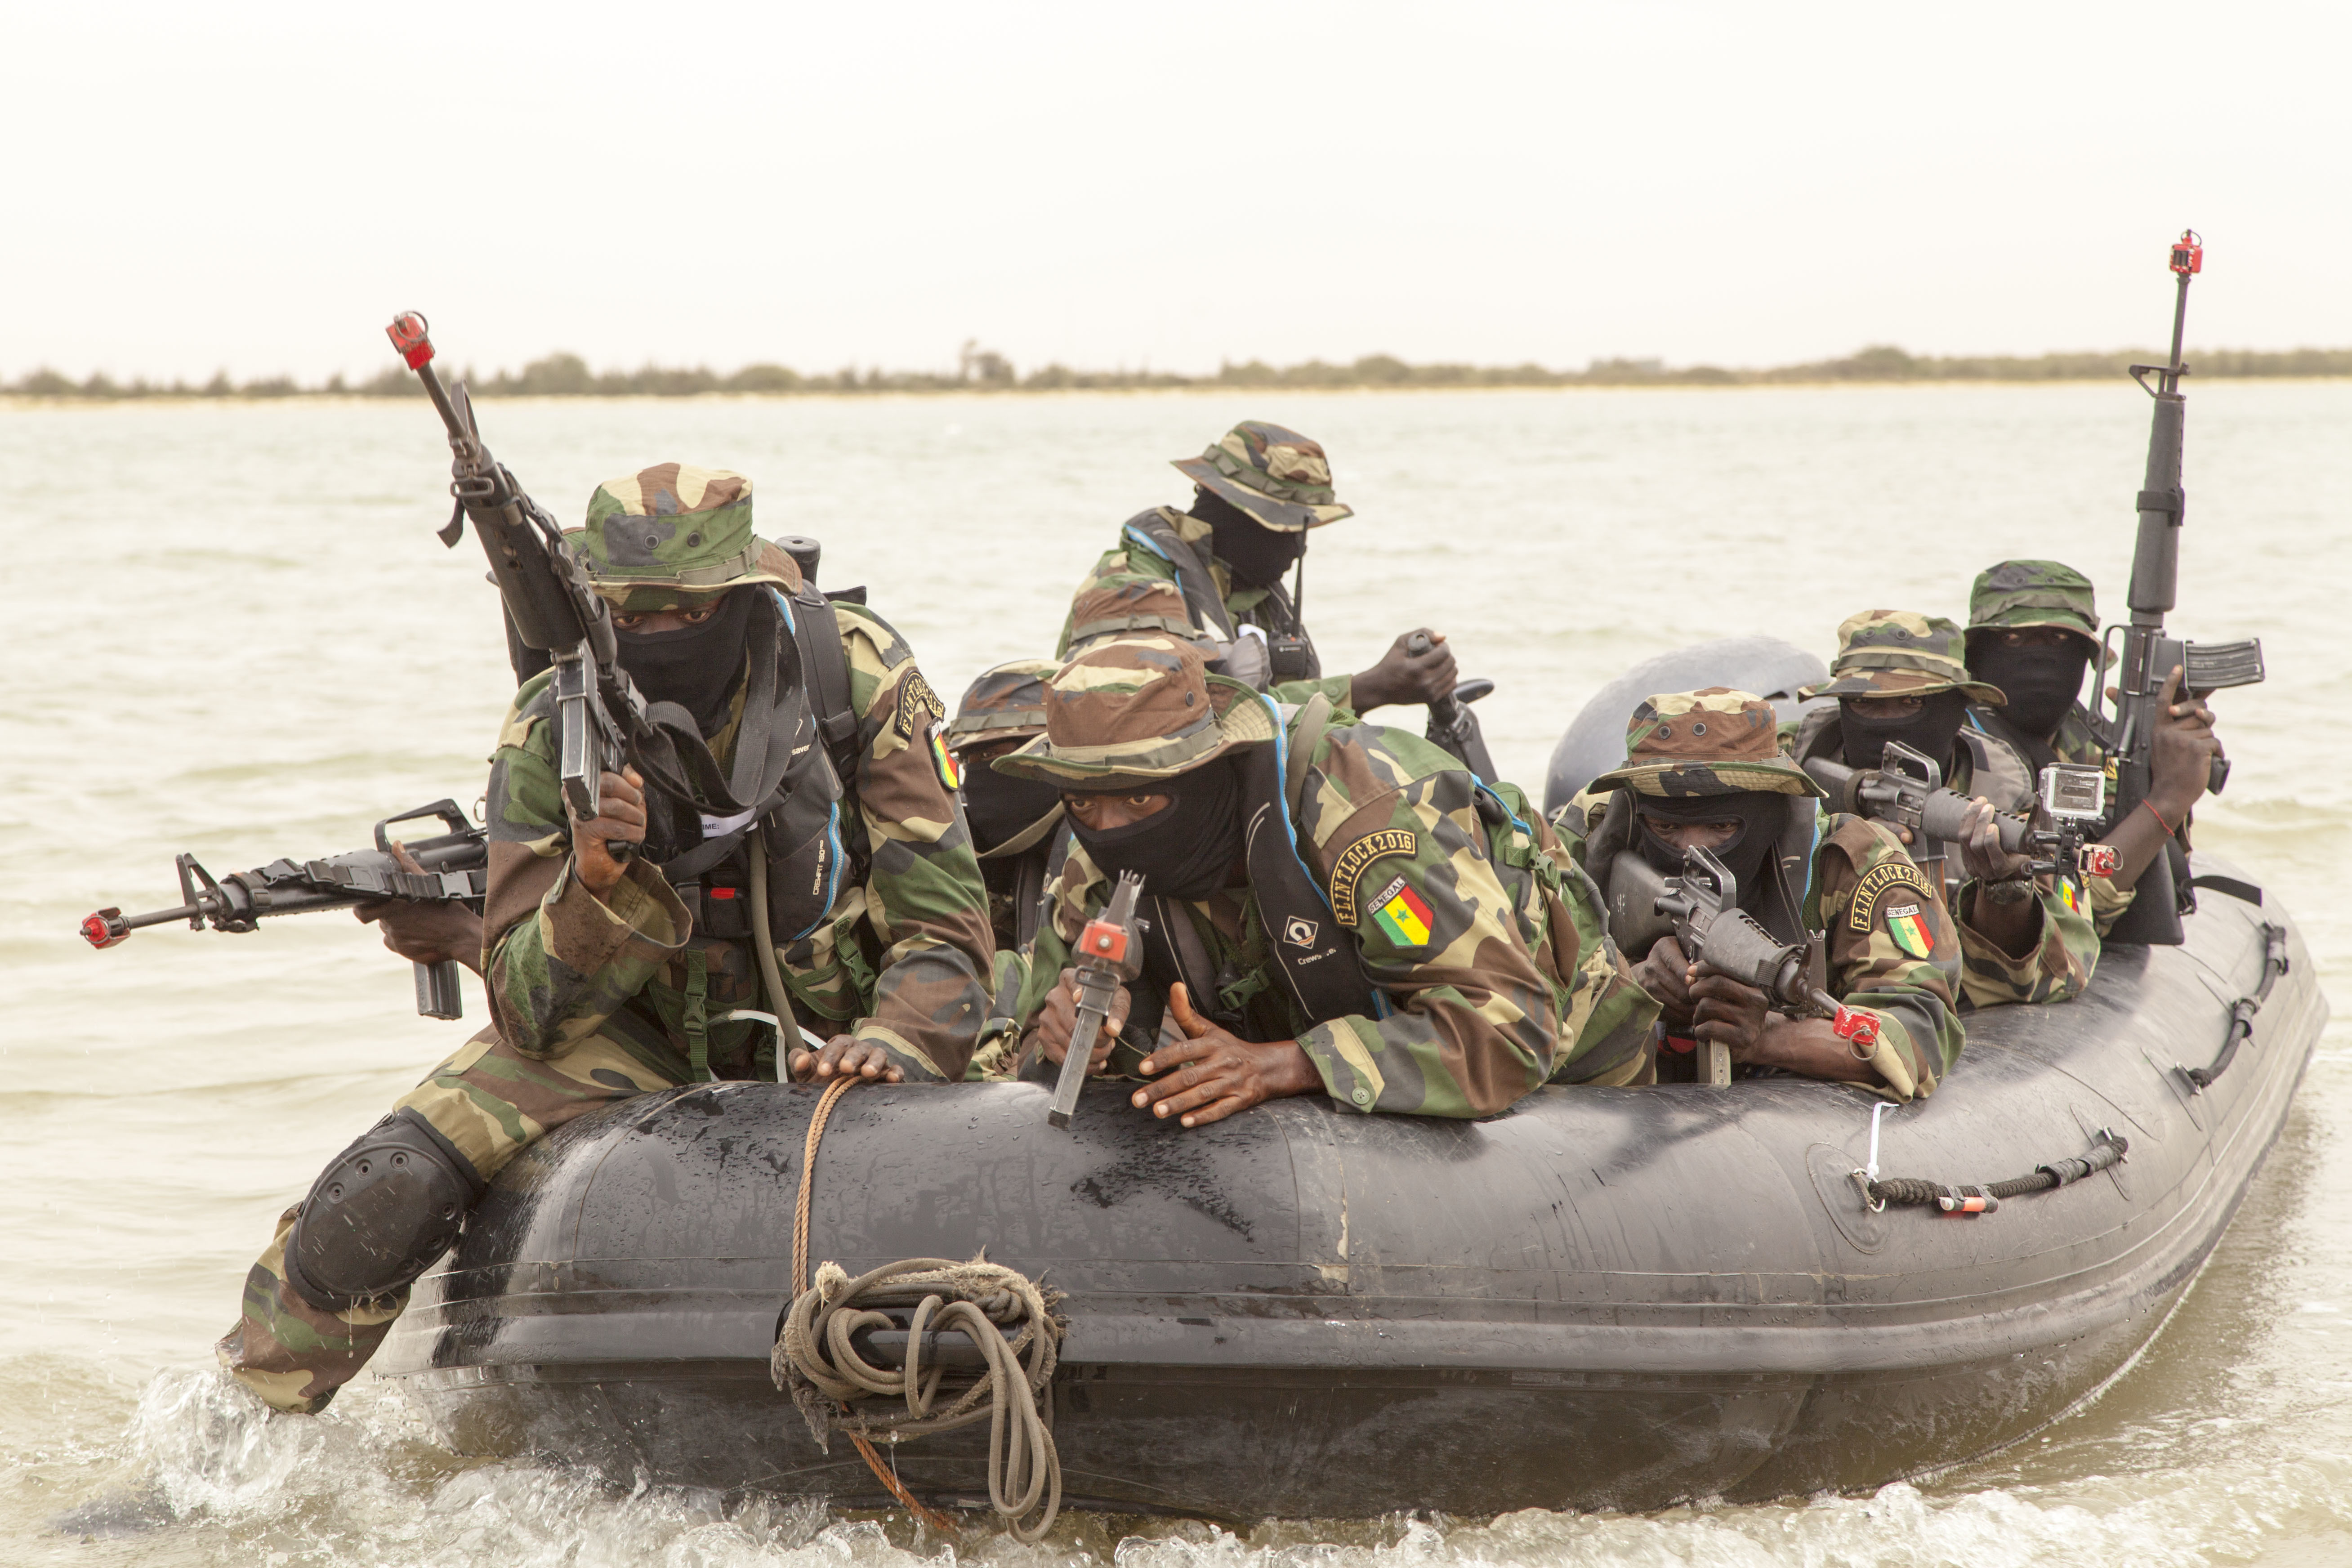 Senegalese Special Operations Forces conduct a beach landing exercise during Flintlock 2016 in Saint Louis, Senegal, Feb. 12, 2016. Riverine type operations are important in Military Zone 2 in Saint Louis because the region has 700 kilometers of coastline. The riverine operation was a culmination exercise after a weeklong training with Netherlands and U.S. Special Operation Forces. Flintlock 2016 is designed to enhance interoperatibility among all participating nations. (U.S. Army Photo by Spc. David M. Shefchuk)